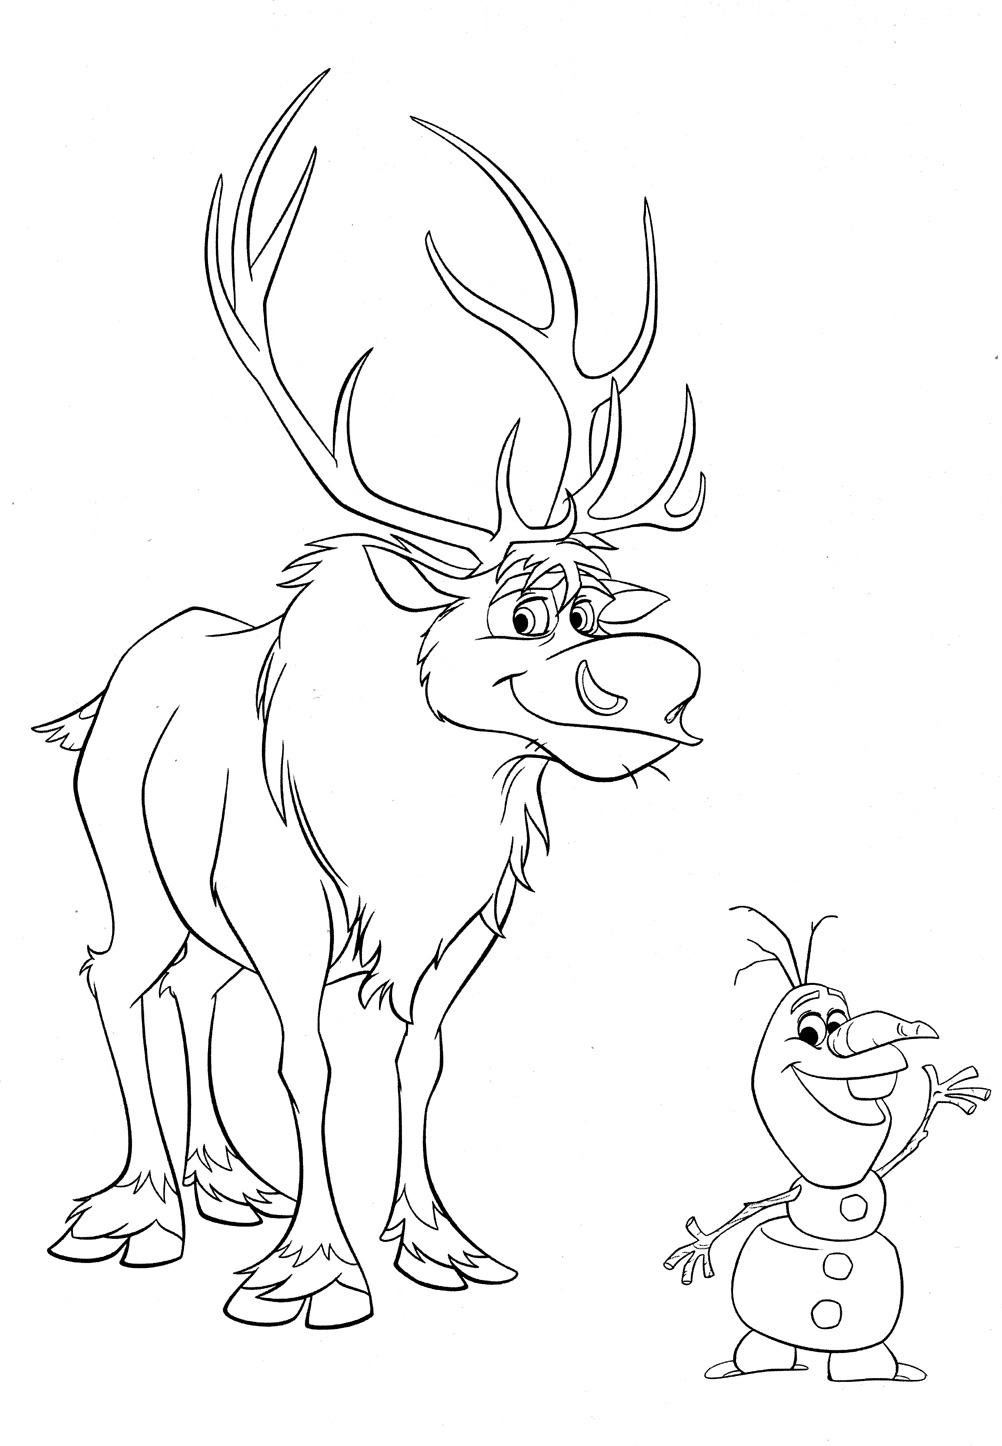 Frozen coloring pages kristoff - Frozen Coloring Pages Sven